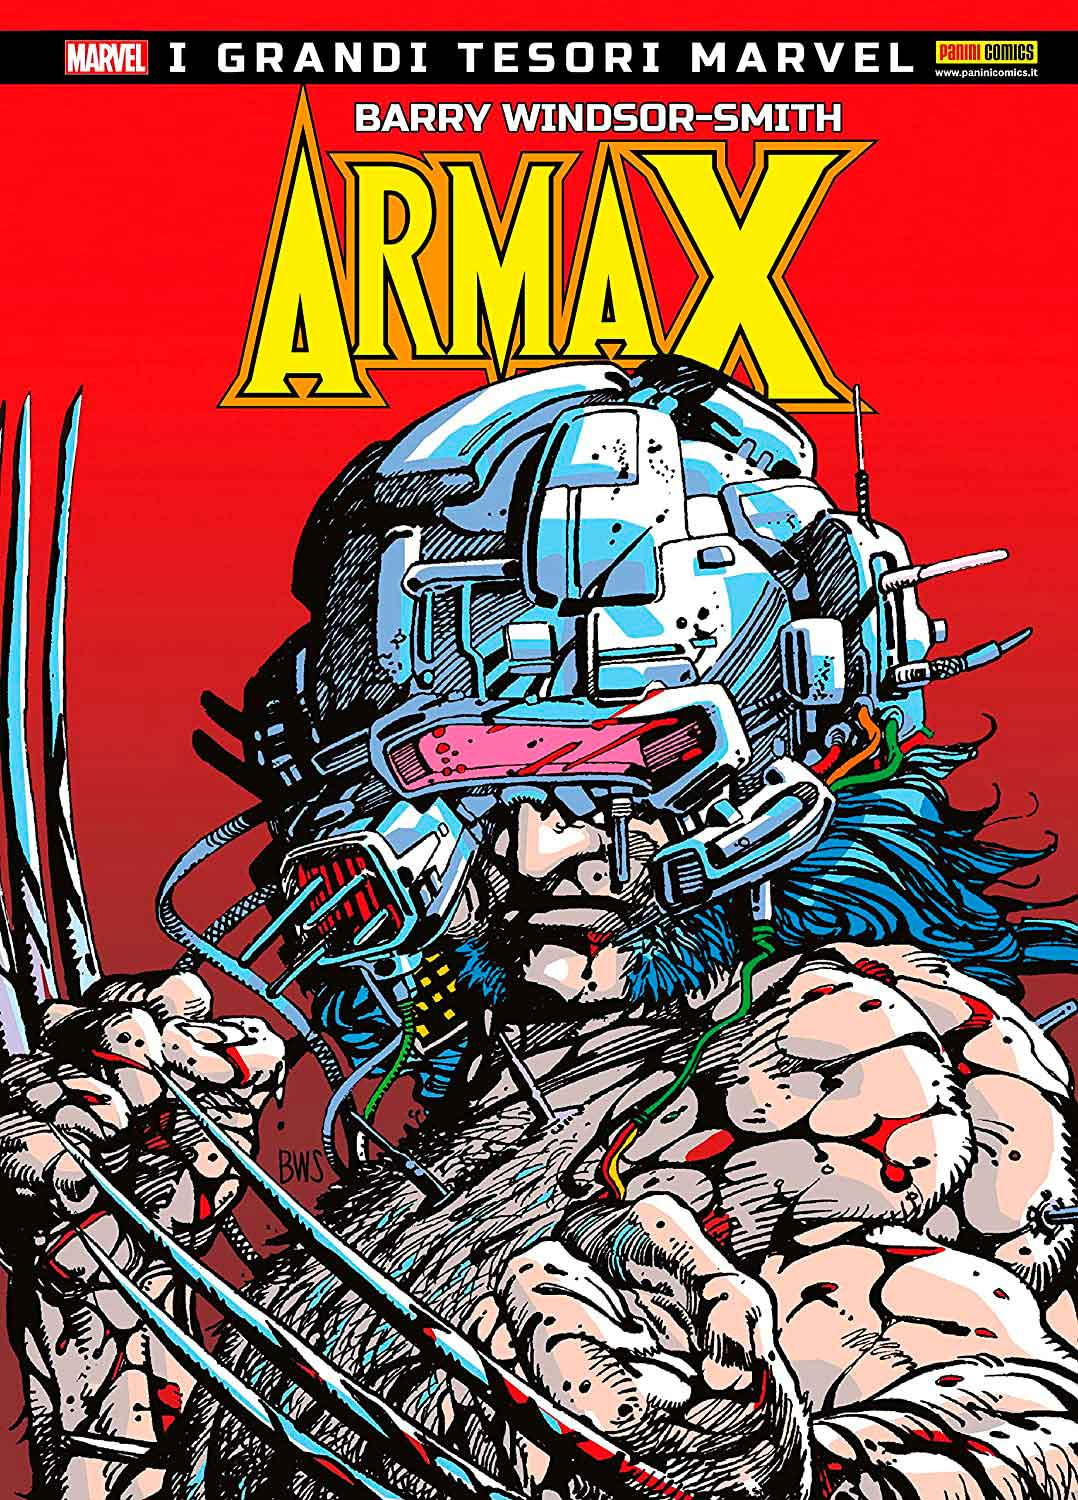 Portada de arma-x de Barry Windsor-Smith